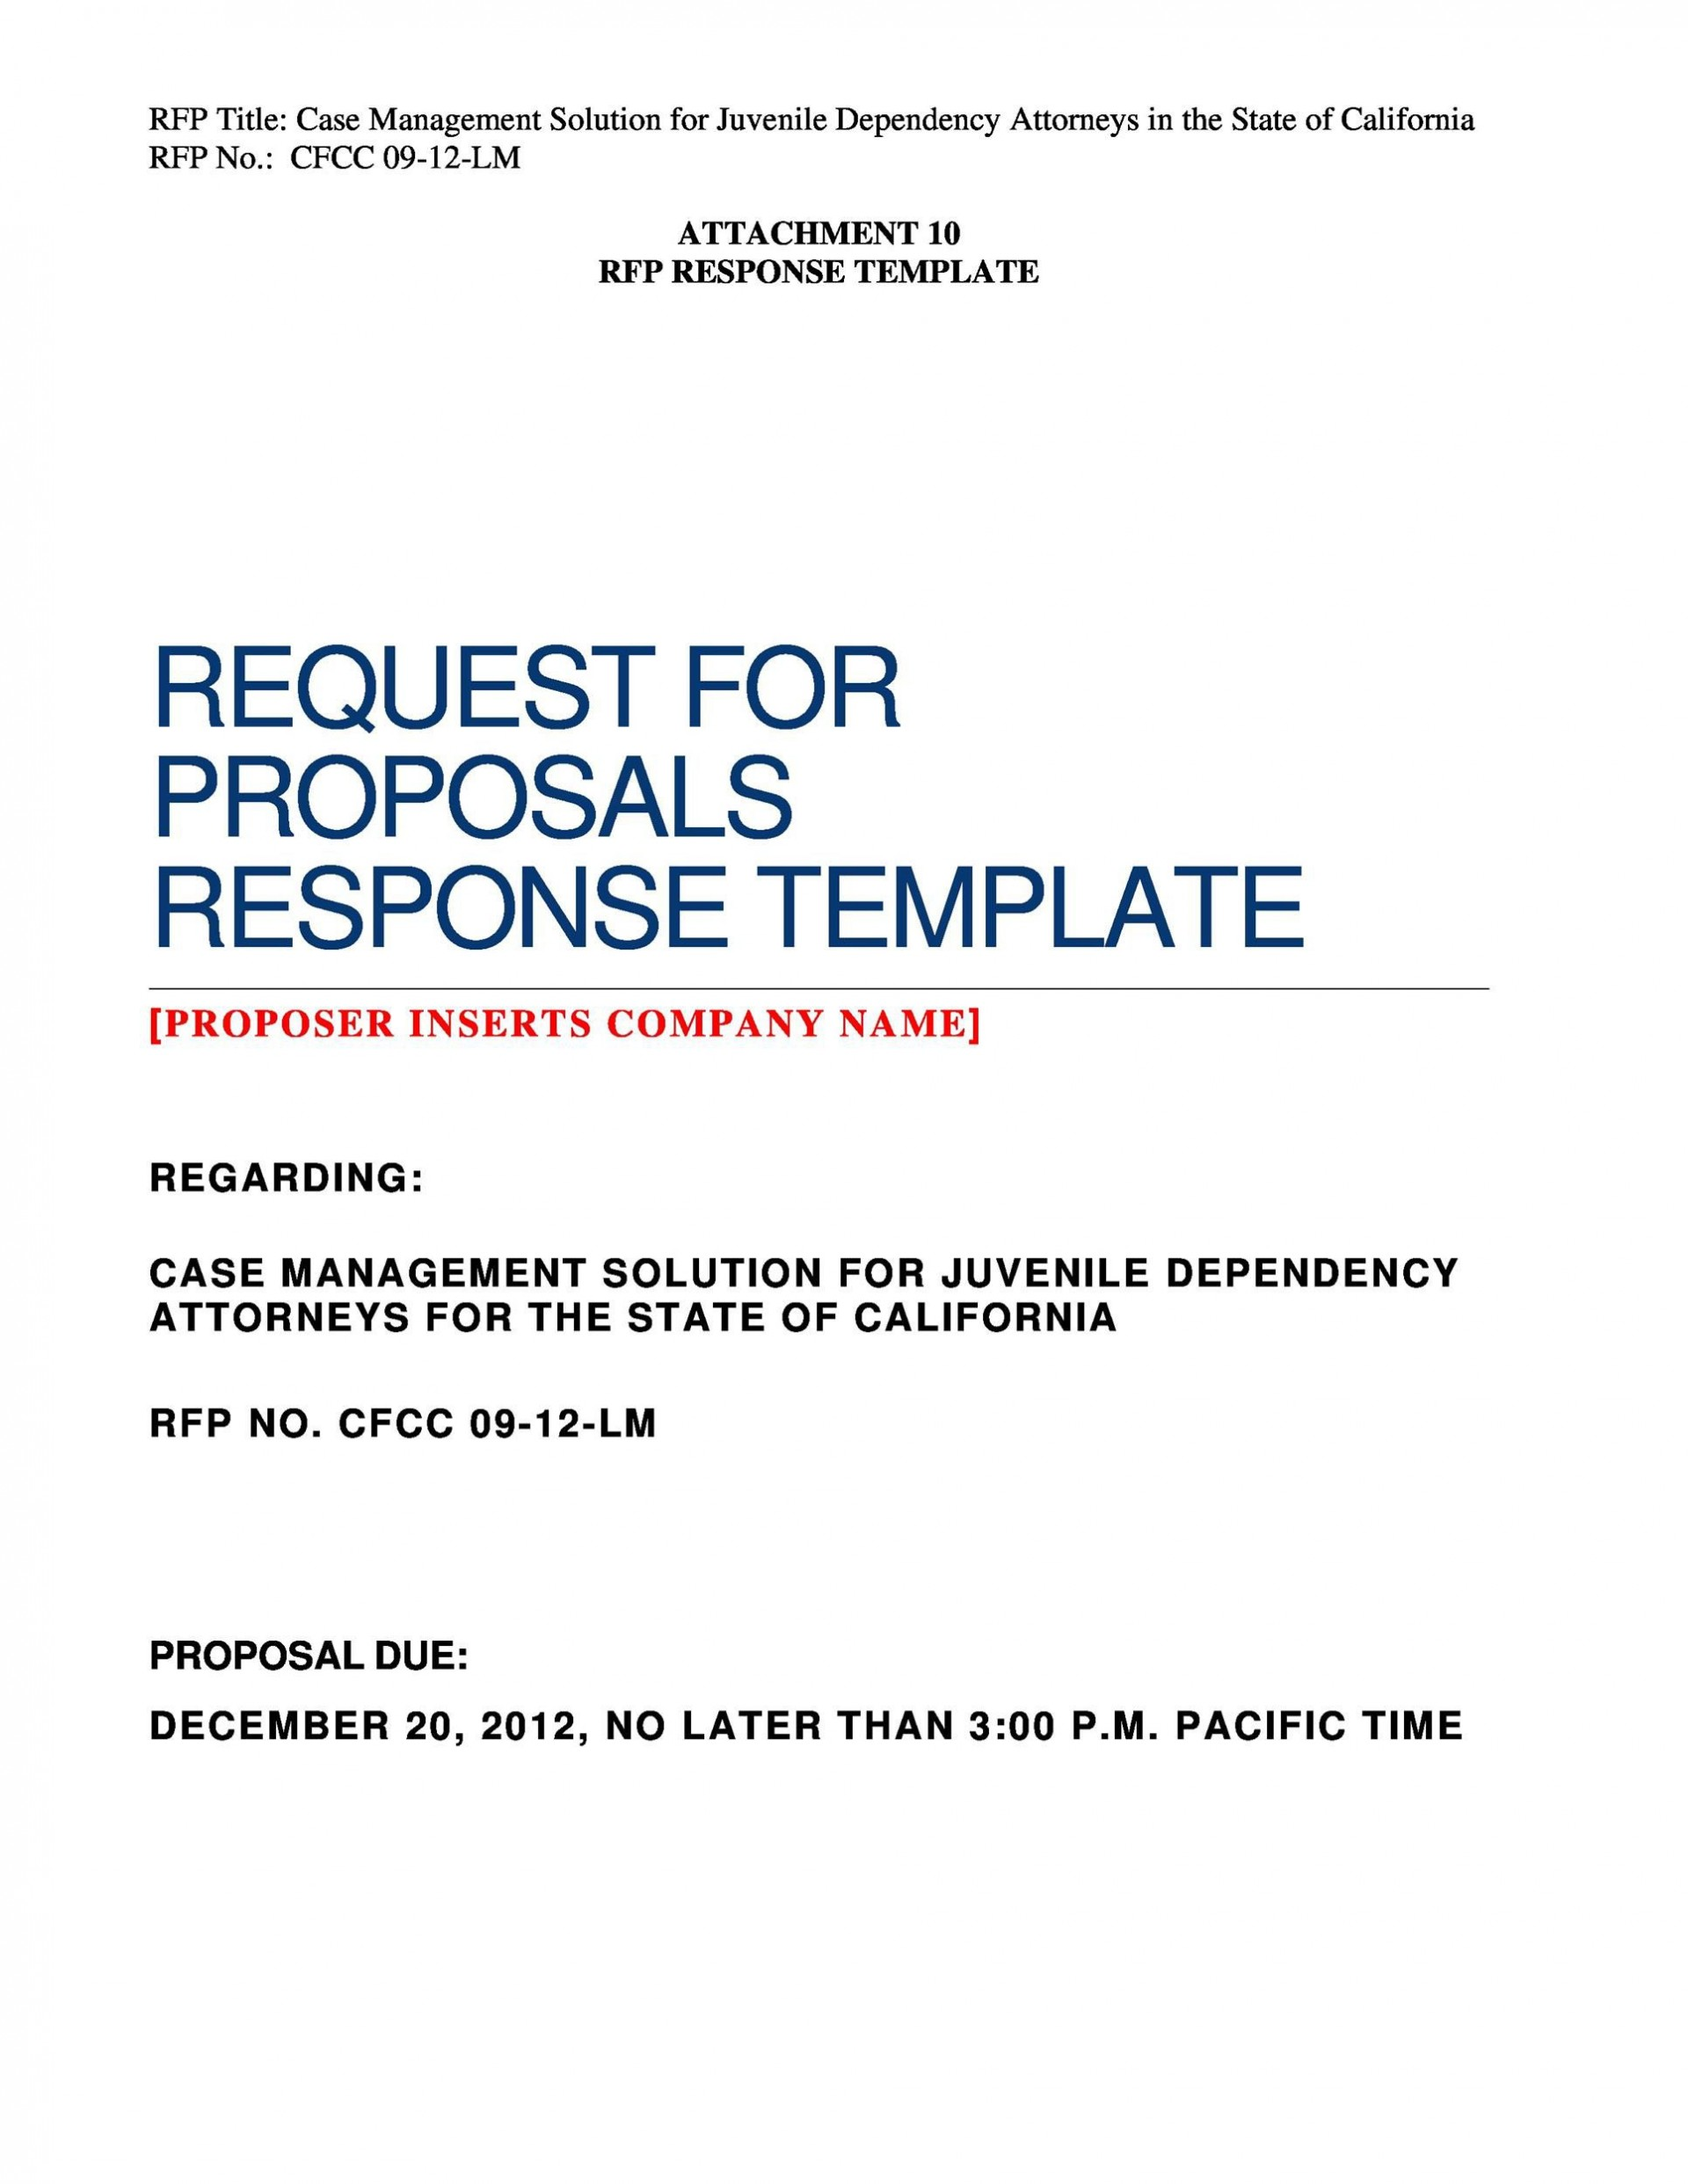 008 Stupendou Request For Proposal Response Template Free High Resolution 1920